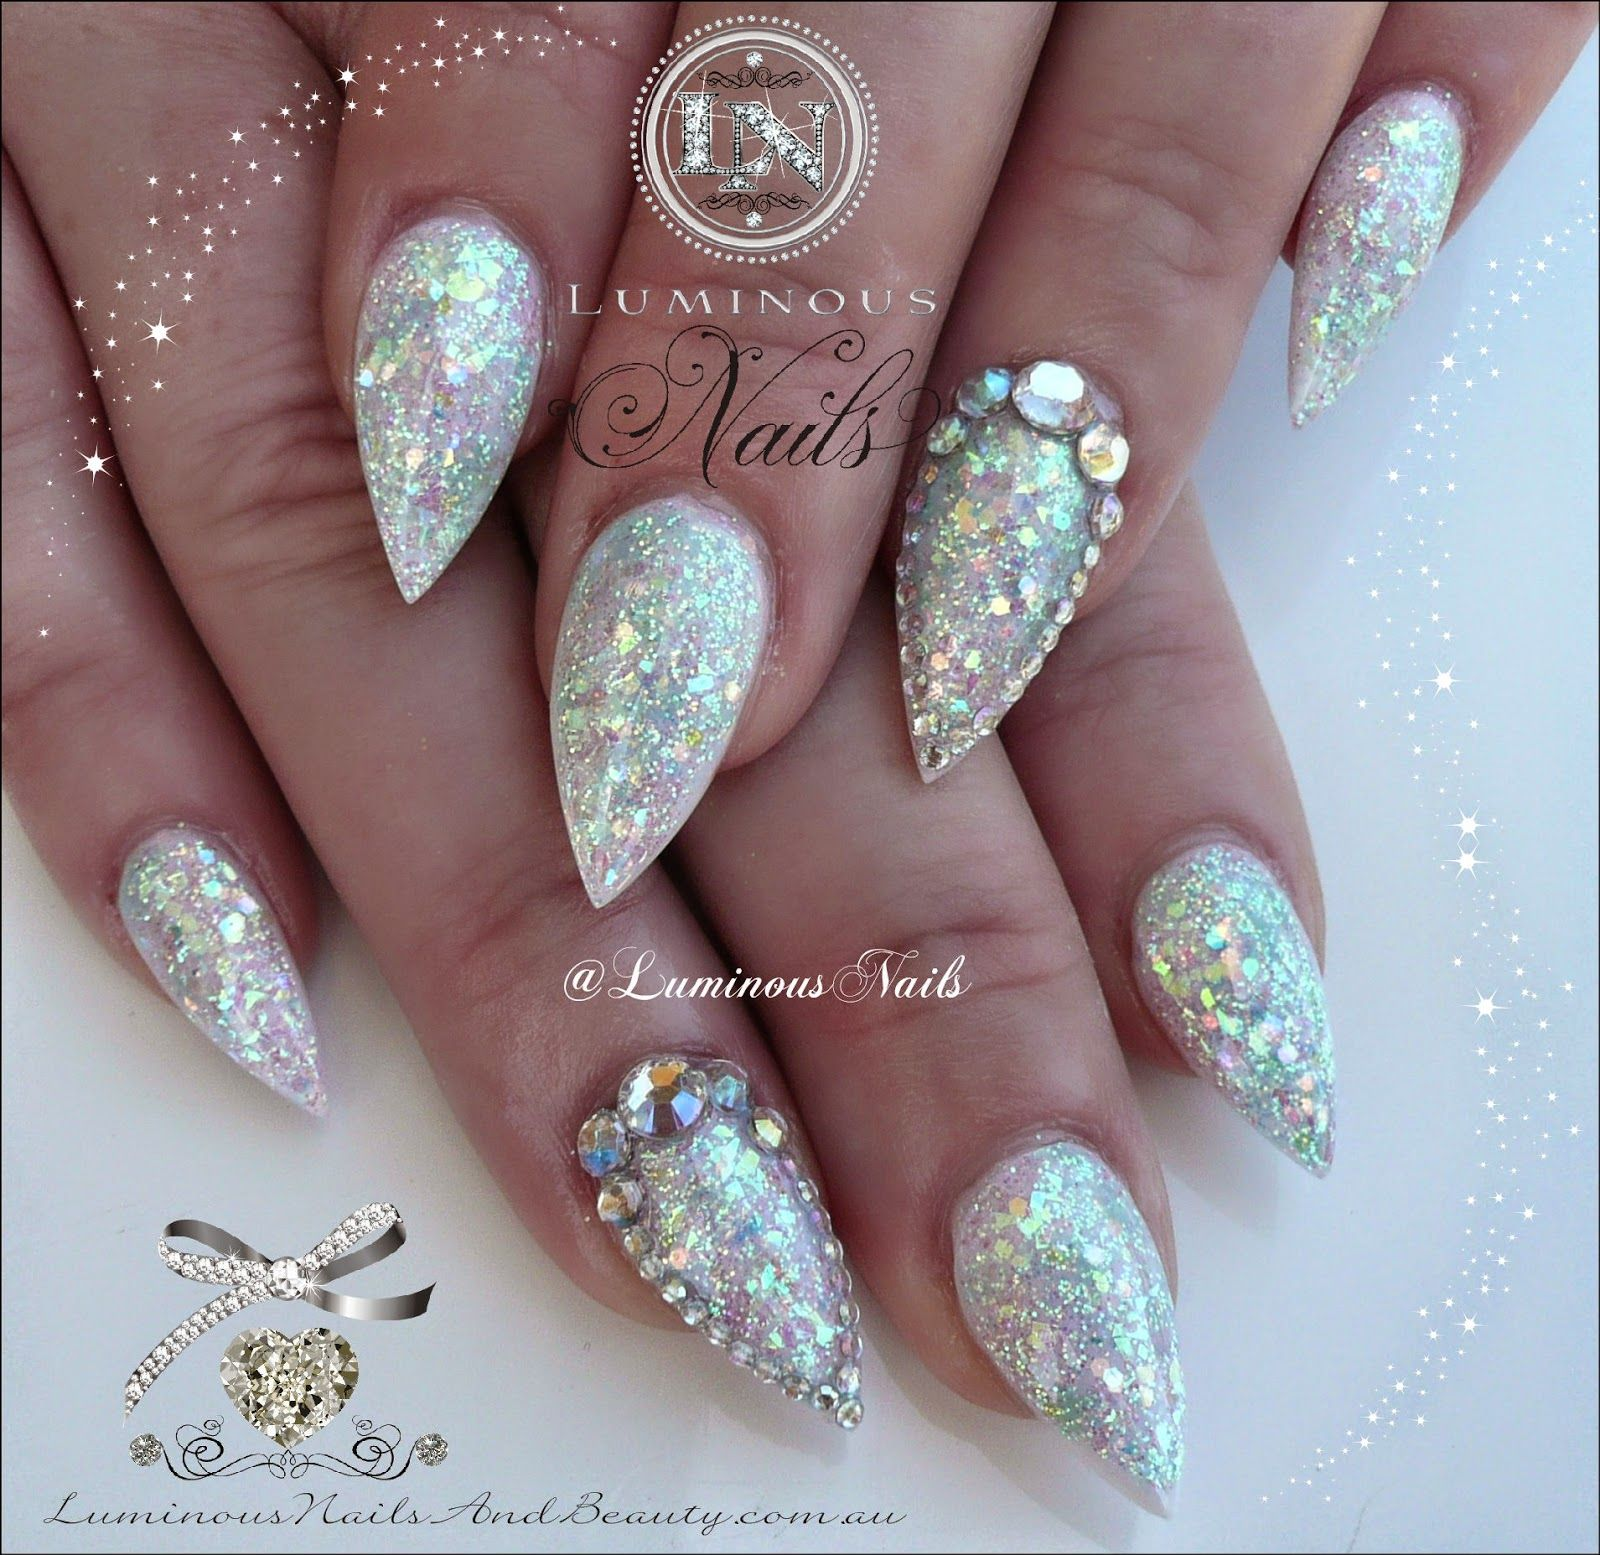 Luminous Nails: White Opal Effect Acrylic Nails with Bling. | nails ...